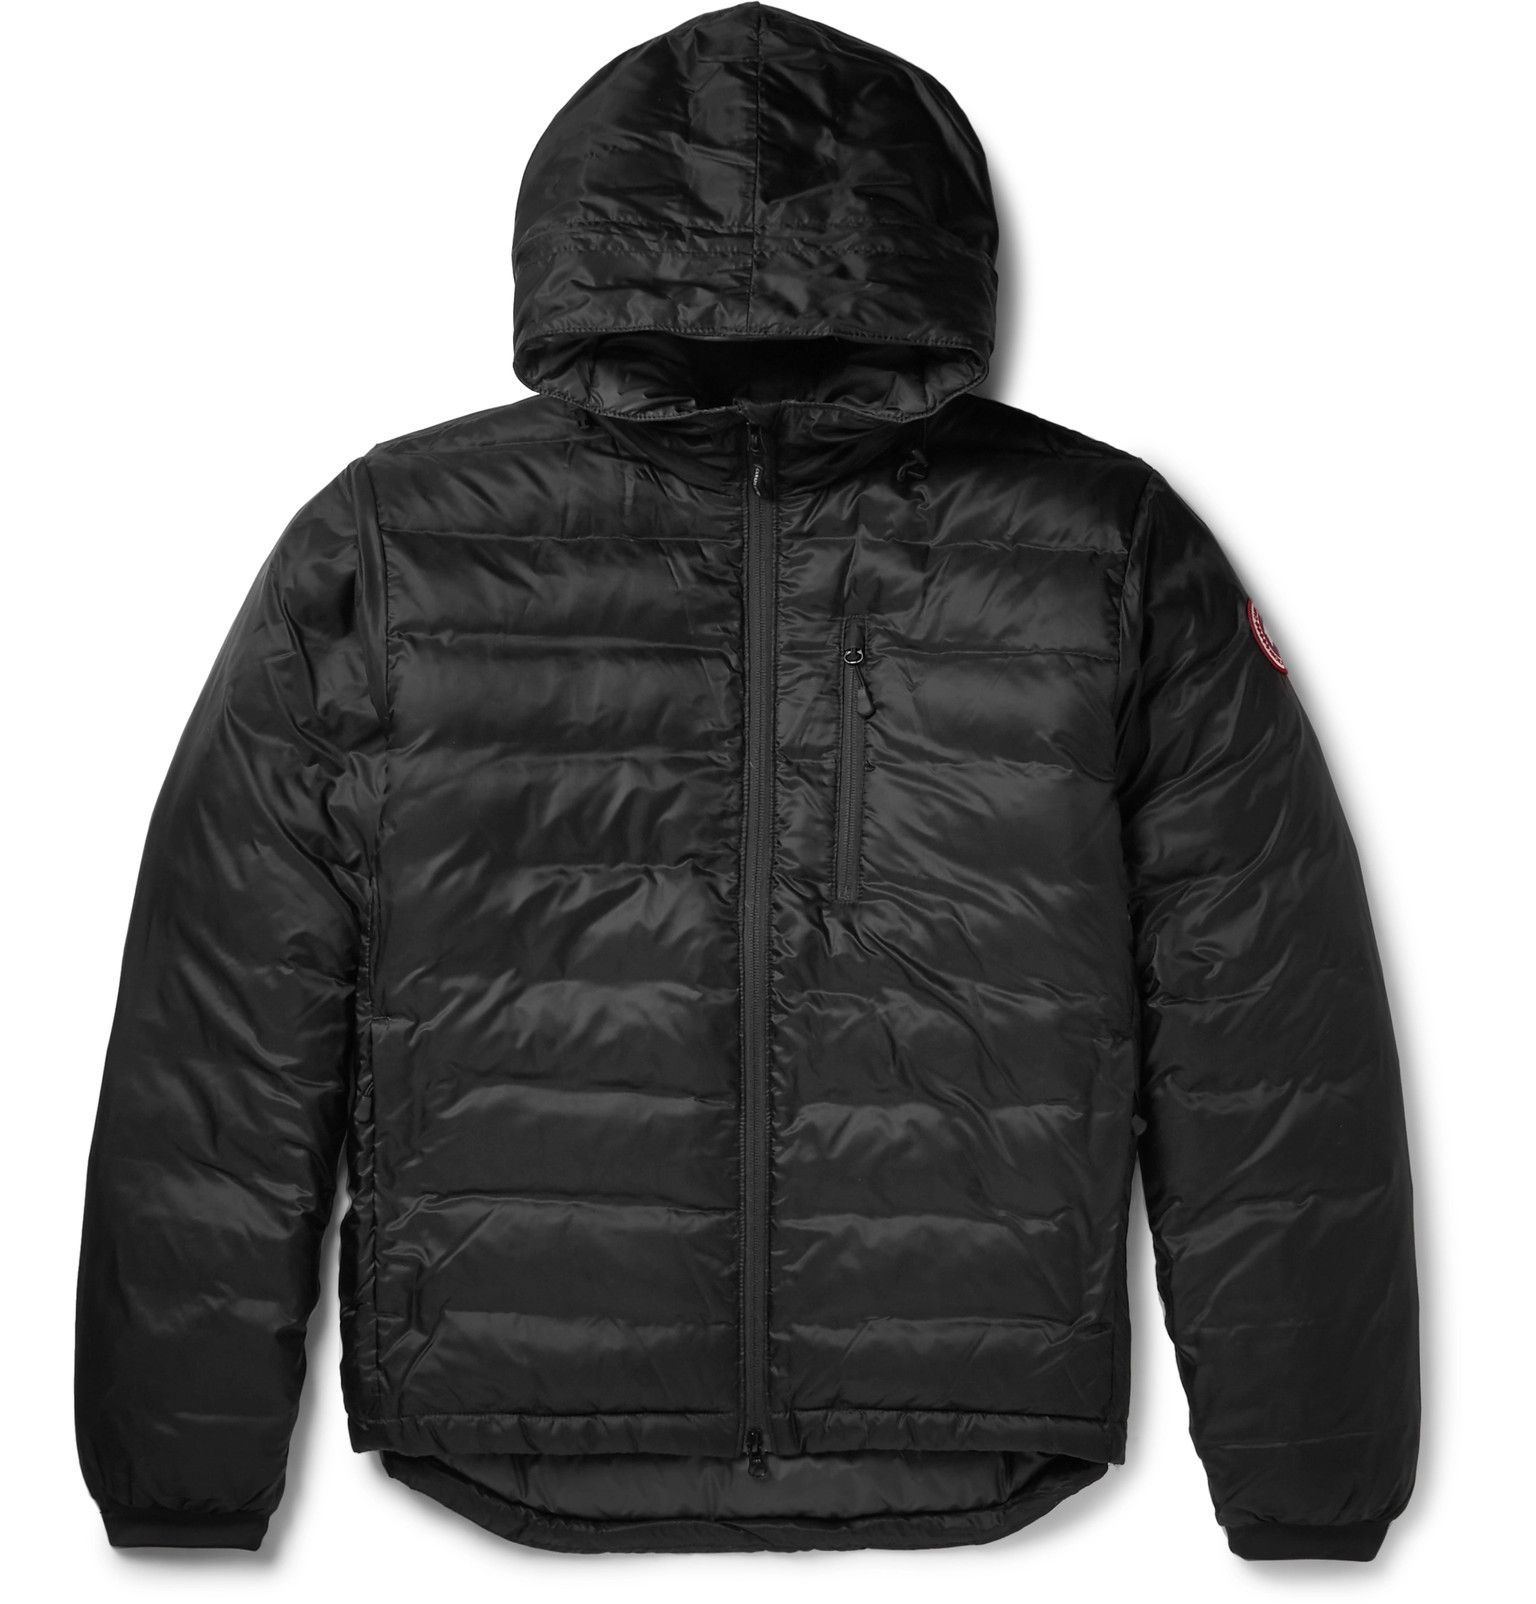 Combining Innovative Practicality With The Premium Warmth That Lt A Href X3d 39 Http X2f X2f Www Mrporter Mens Jackets Jackets Men S Coats And Jackets